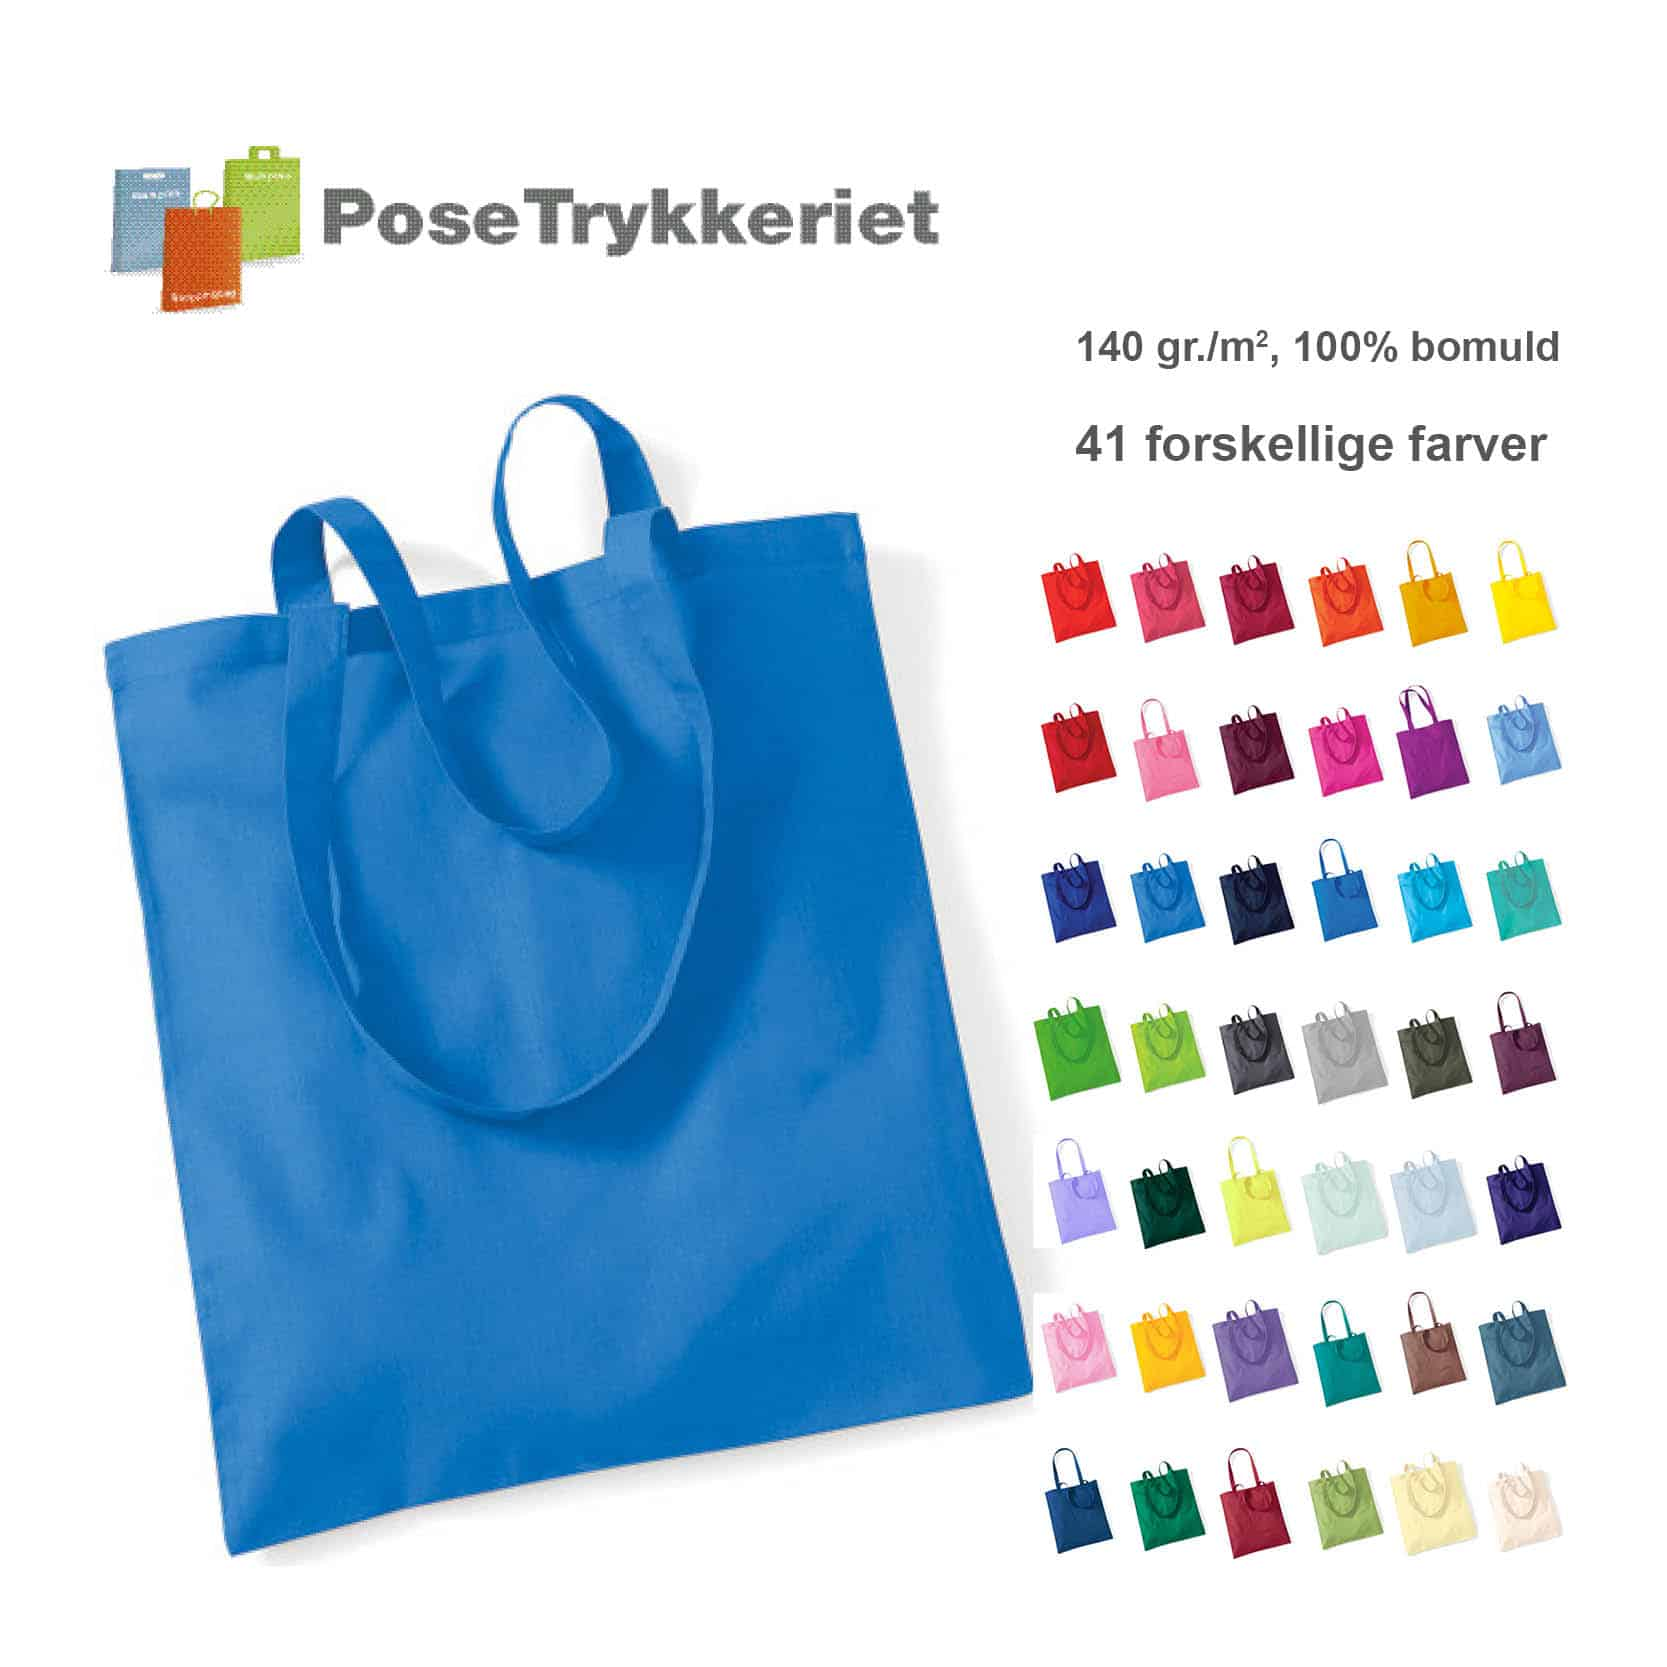 Tote bags 100% bomuld, 41 farver.PoseTrykkeriet.dk